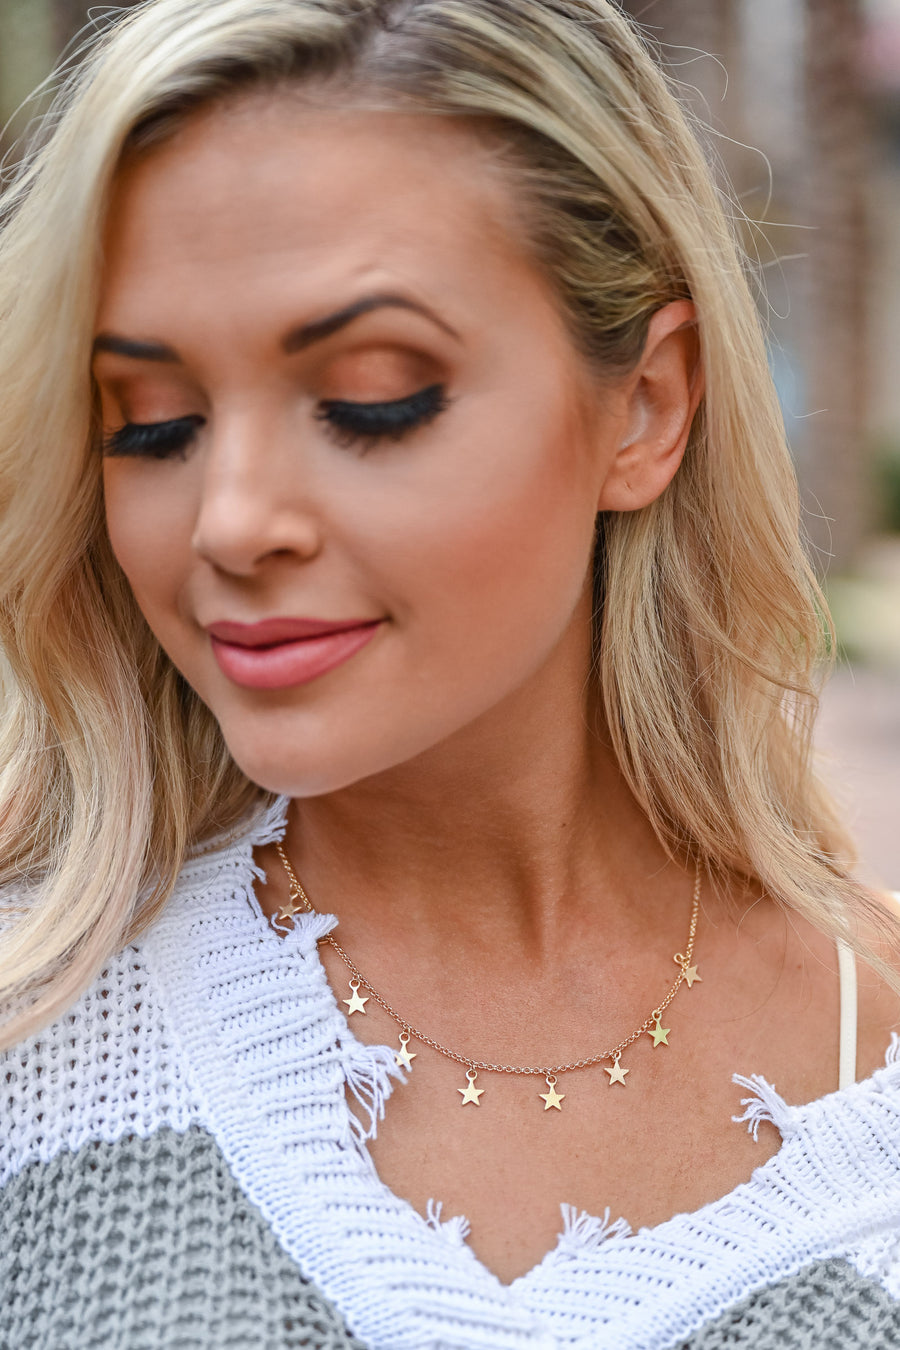 In The Sky Star Choker Necklace - Gold womens trendy gold tone star charms choker closet candy close